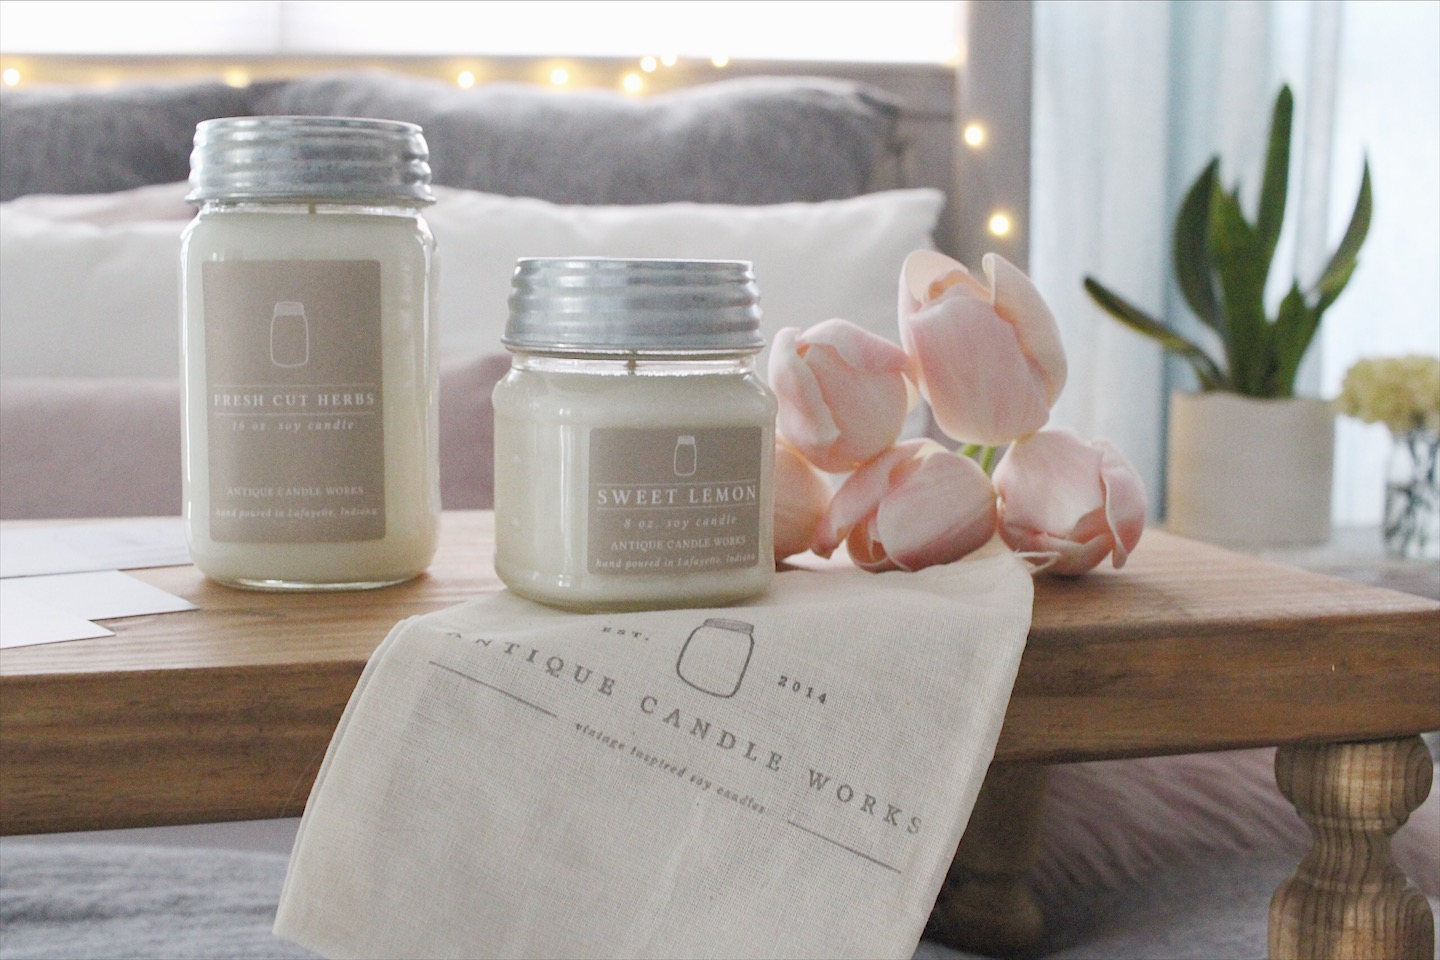 Antique Candle Works new spring scents